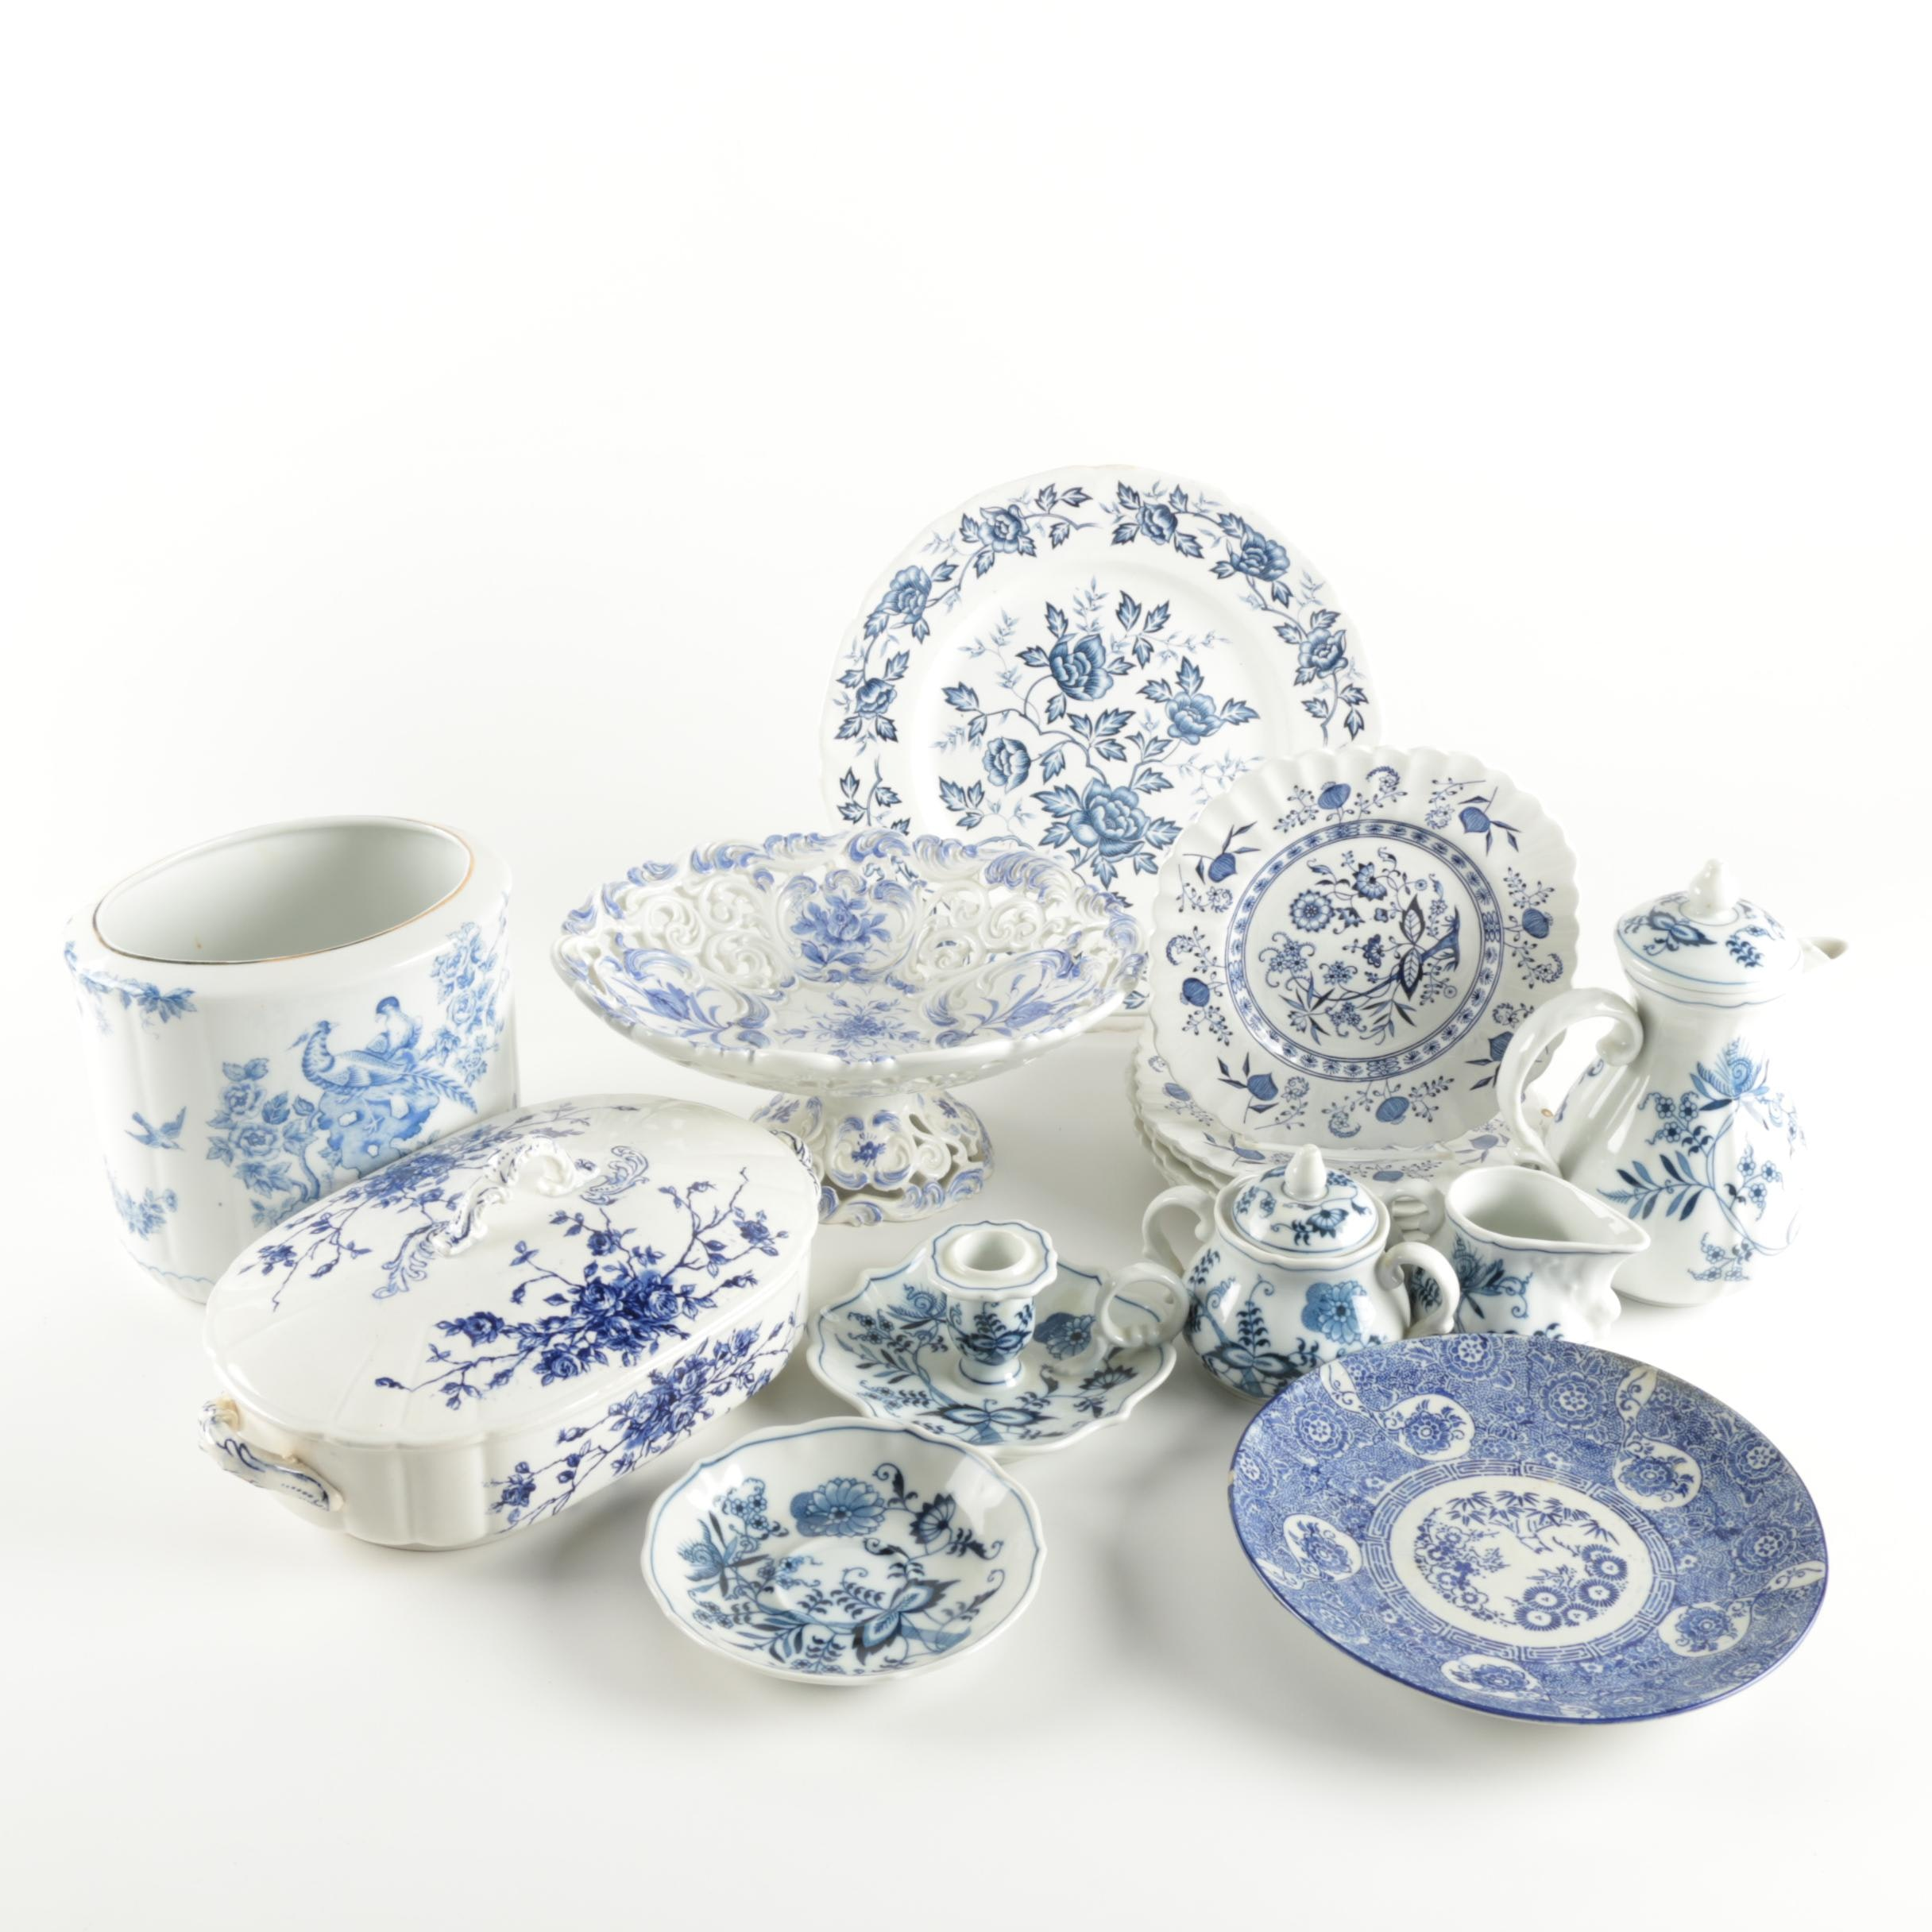 Assortment of Blue and White Ceramic Tableware